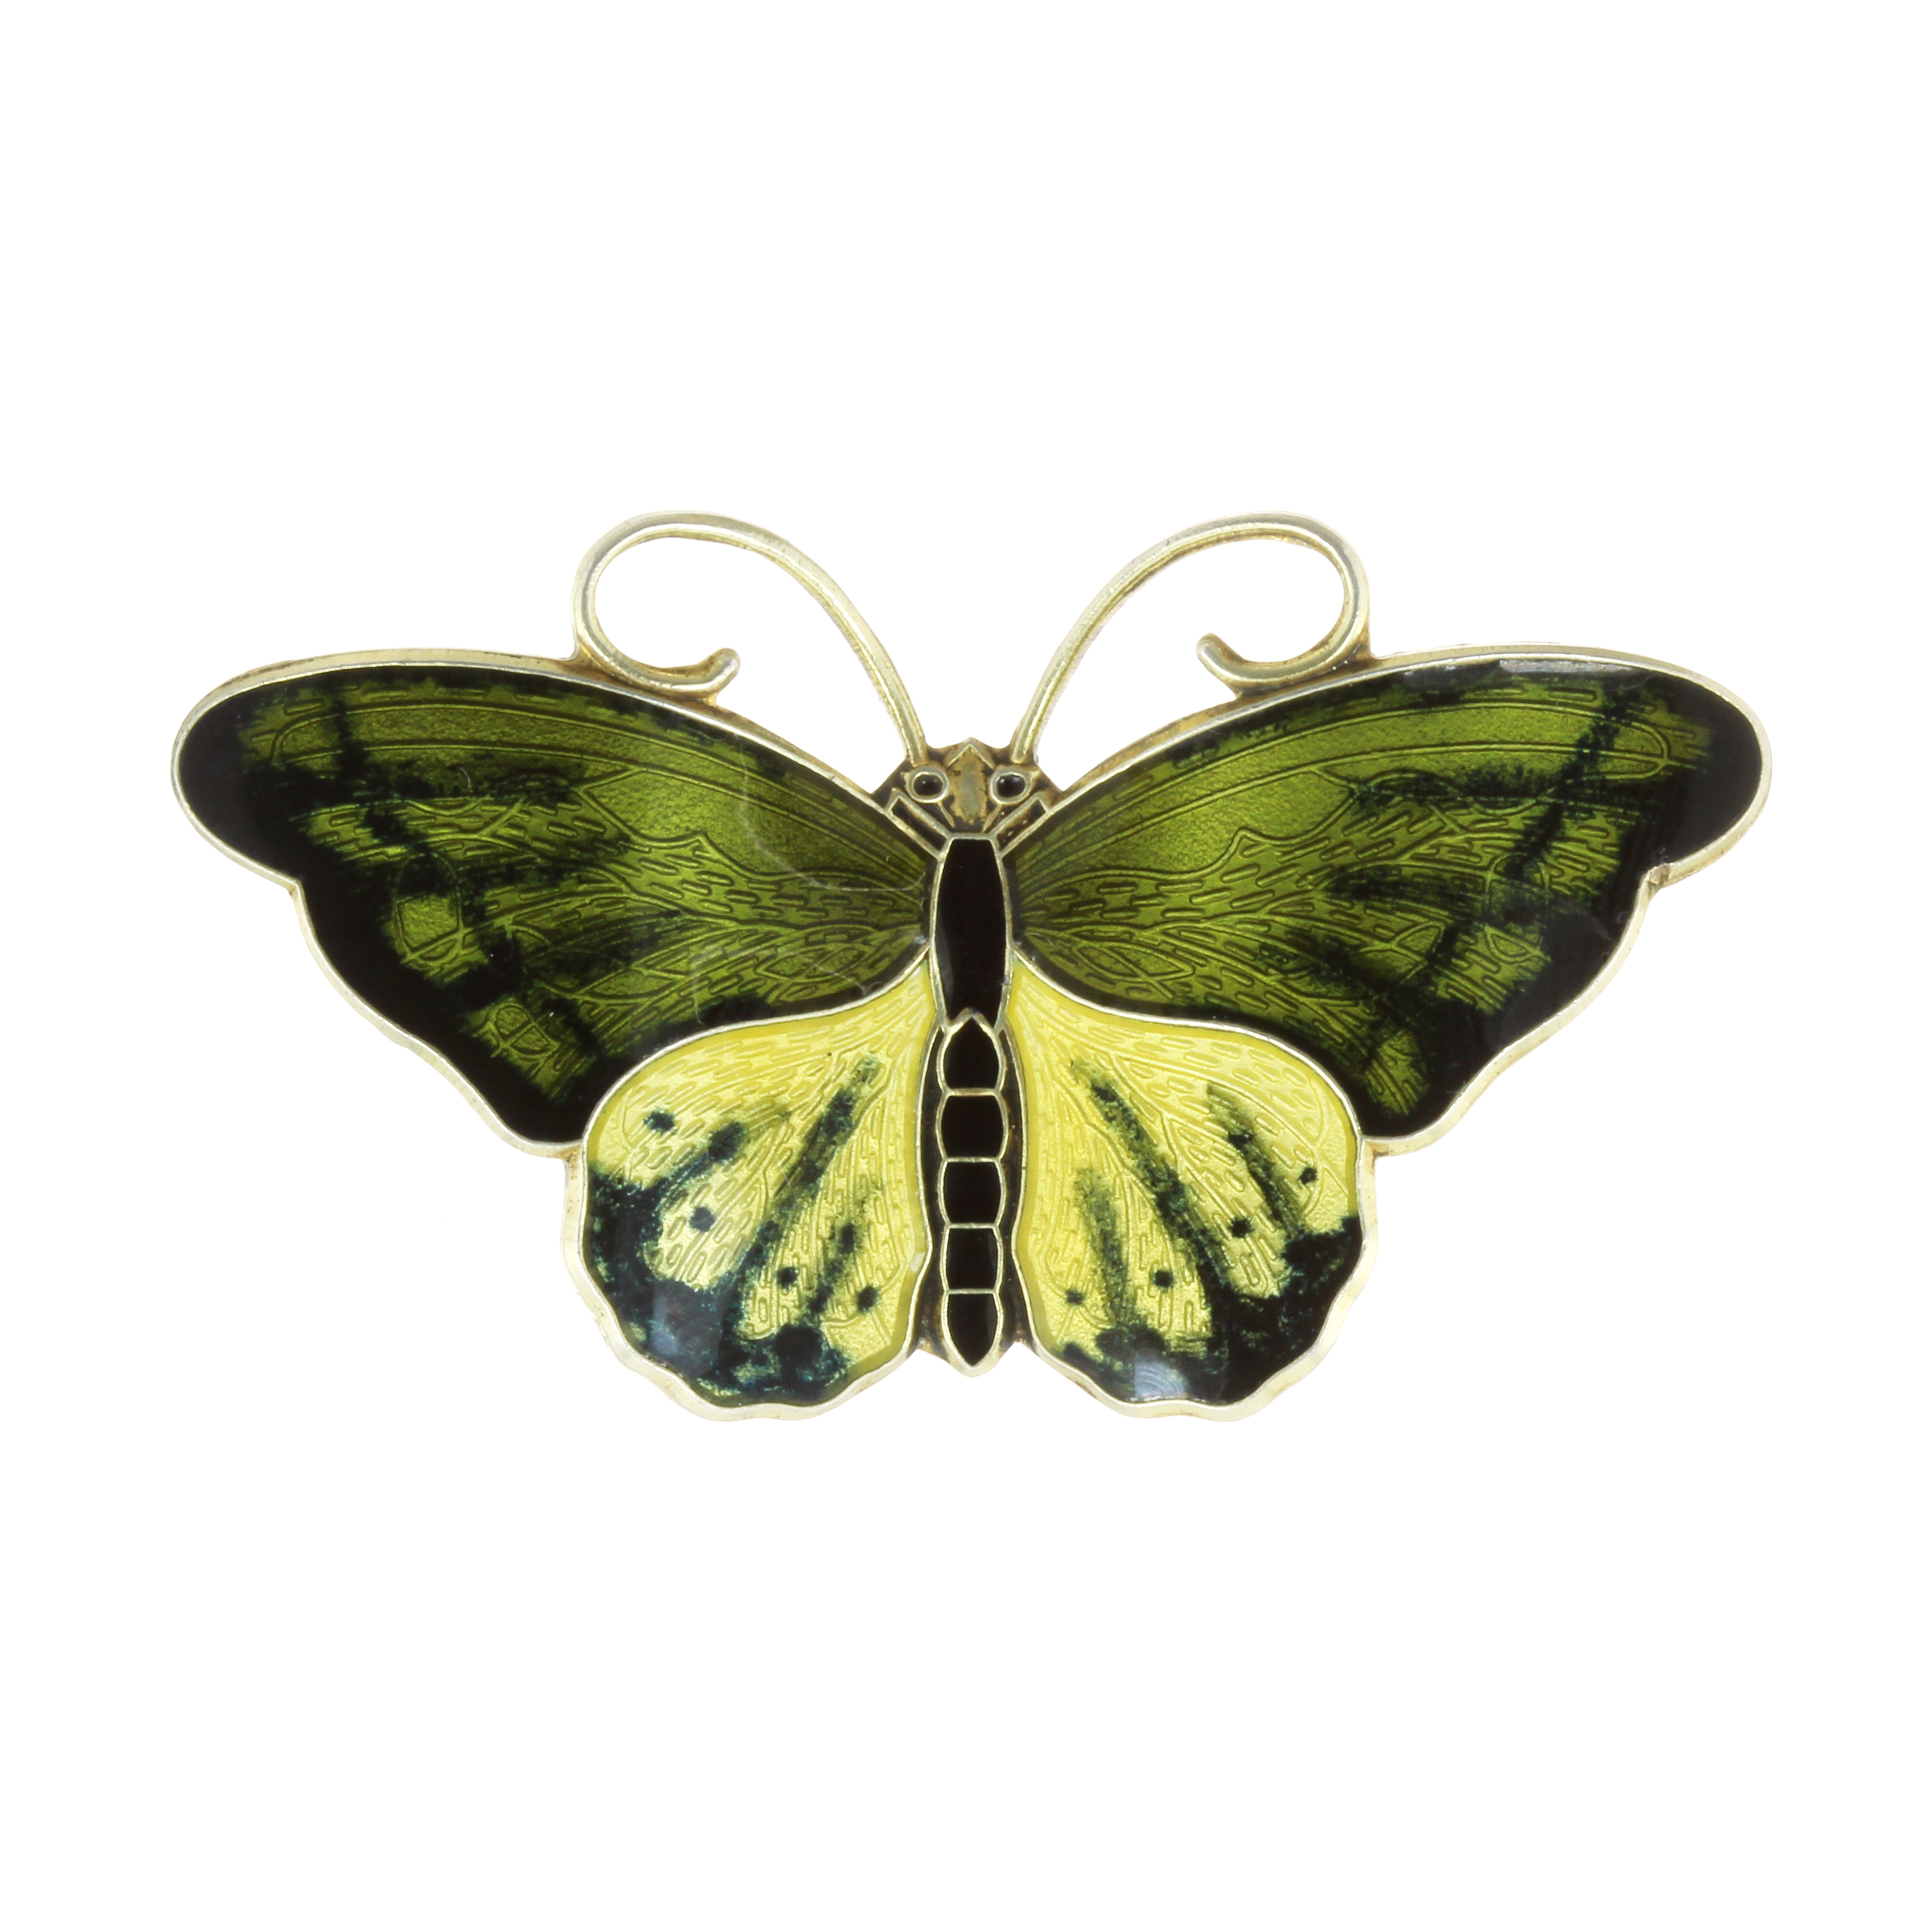 Los 44 - AN ENAMEL BUTTERFLY BROOCH, NORWEGIAN MID 20TH CENTURY designed as a butterfly, its body and wings